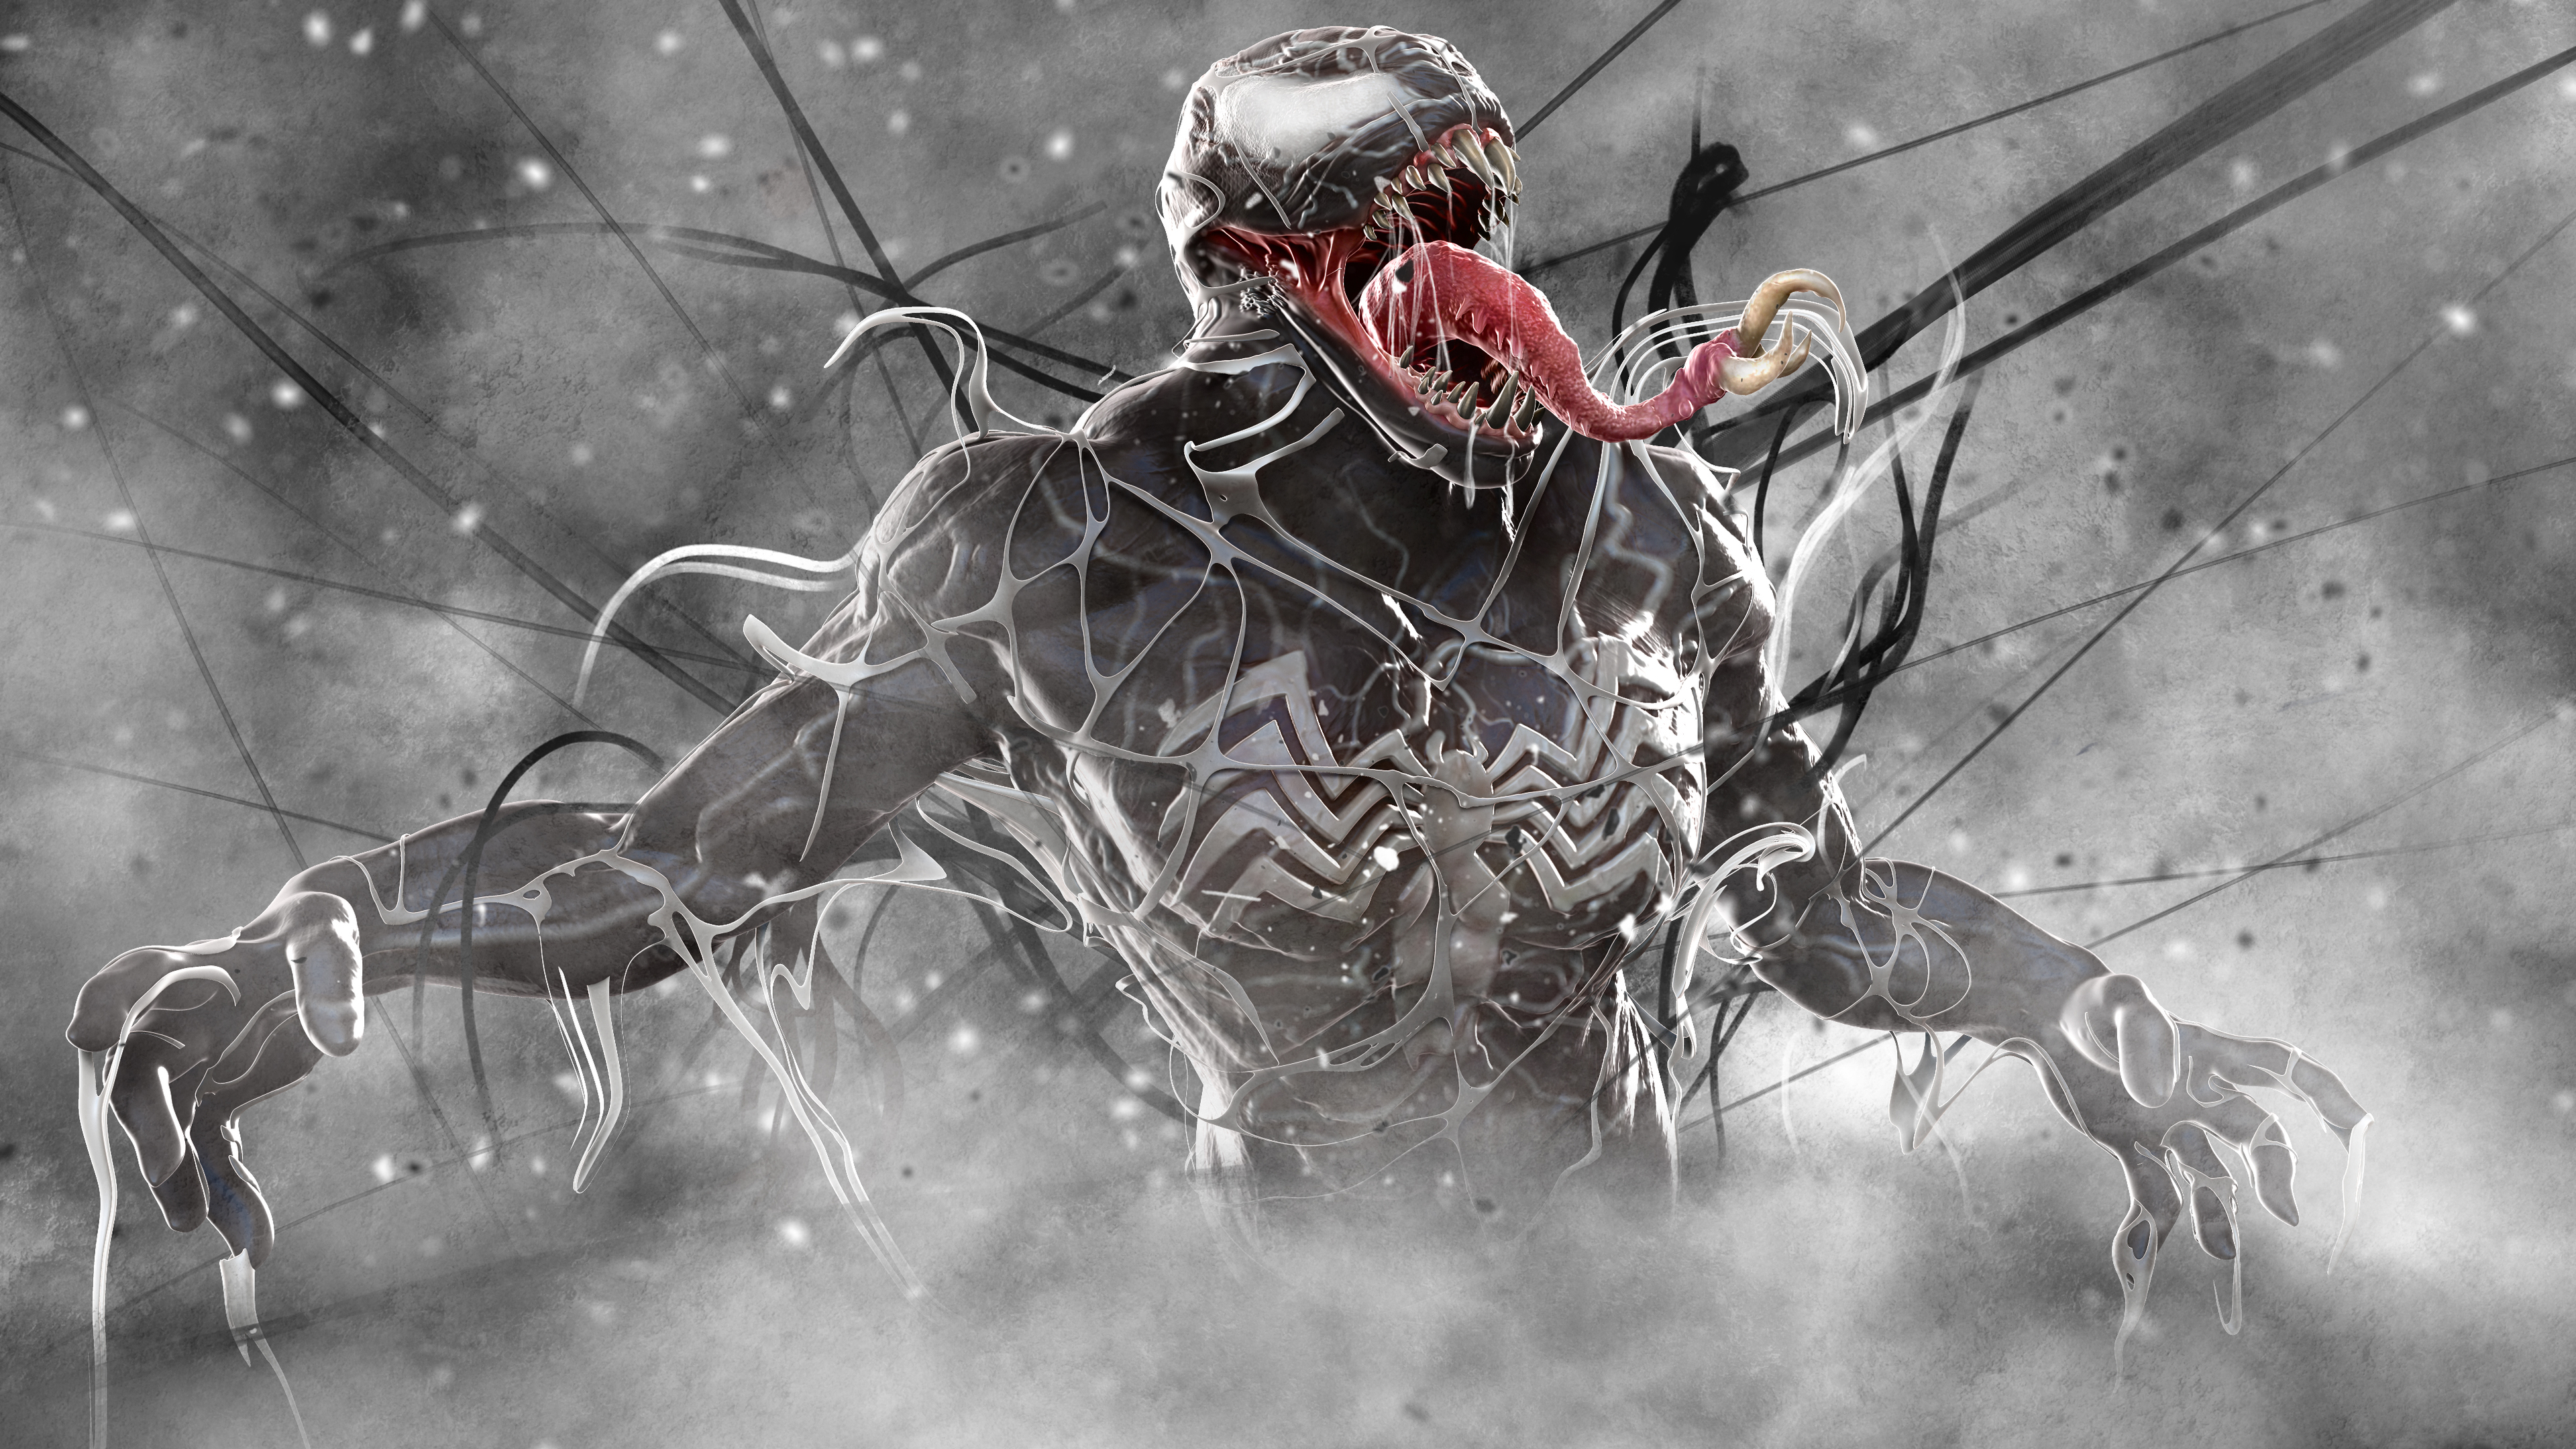 venom artwork 2018 1536523891 - Venom Artwork 2018 - Venom wallpapers, supervillain wallpapers, superheroes wallpapers, hd-wallpapers, deviantart wallpapers, artwork wallpapers, artist wallpapers